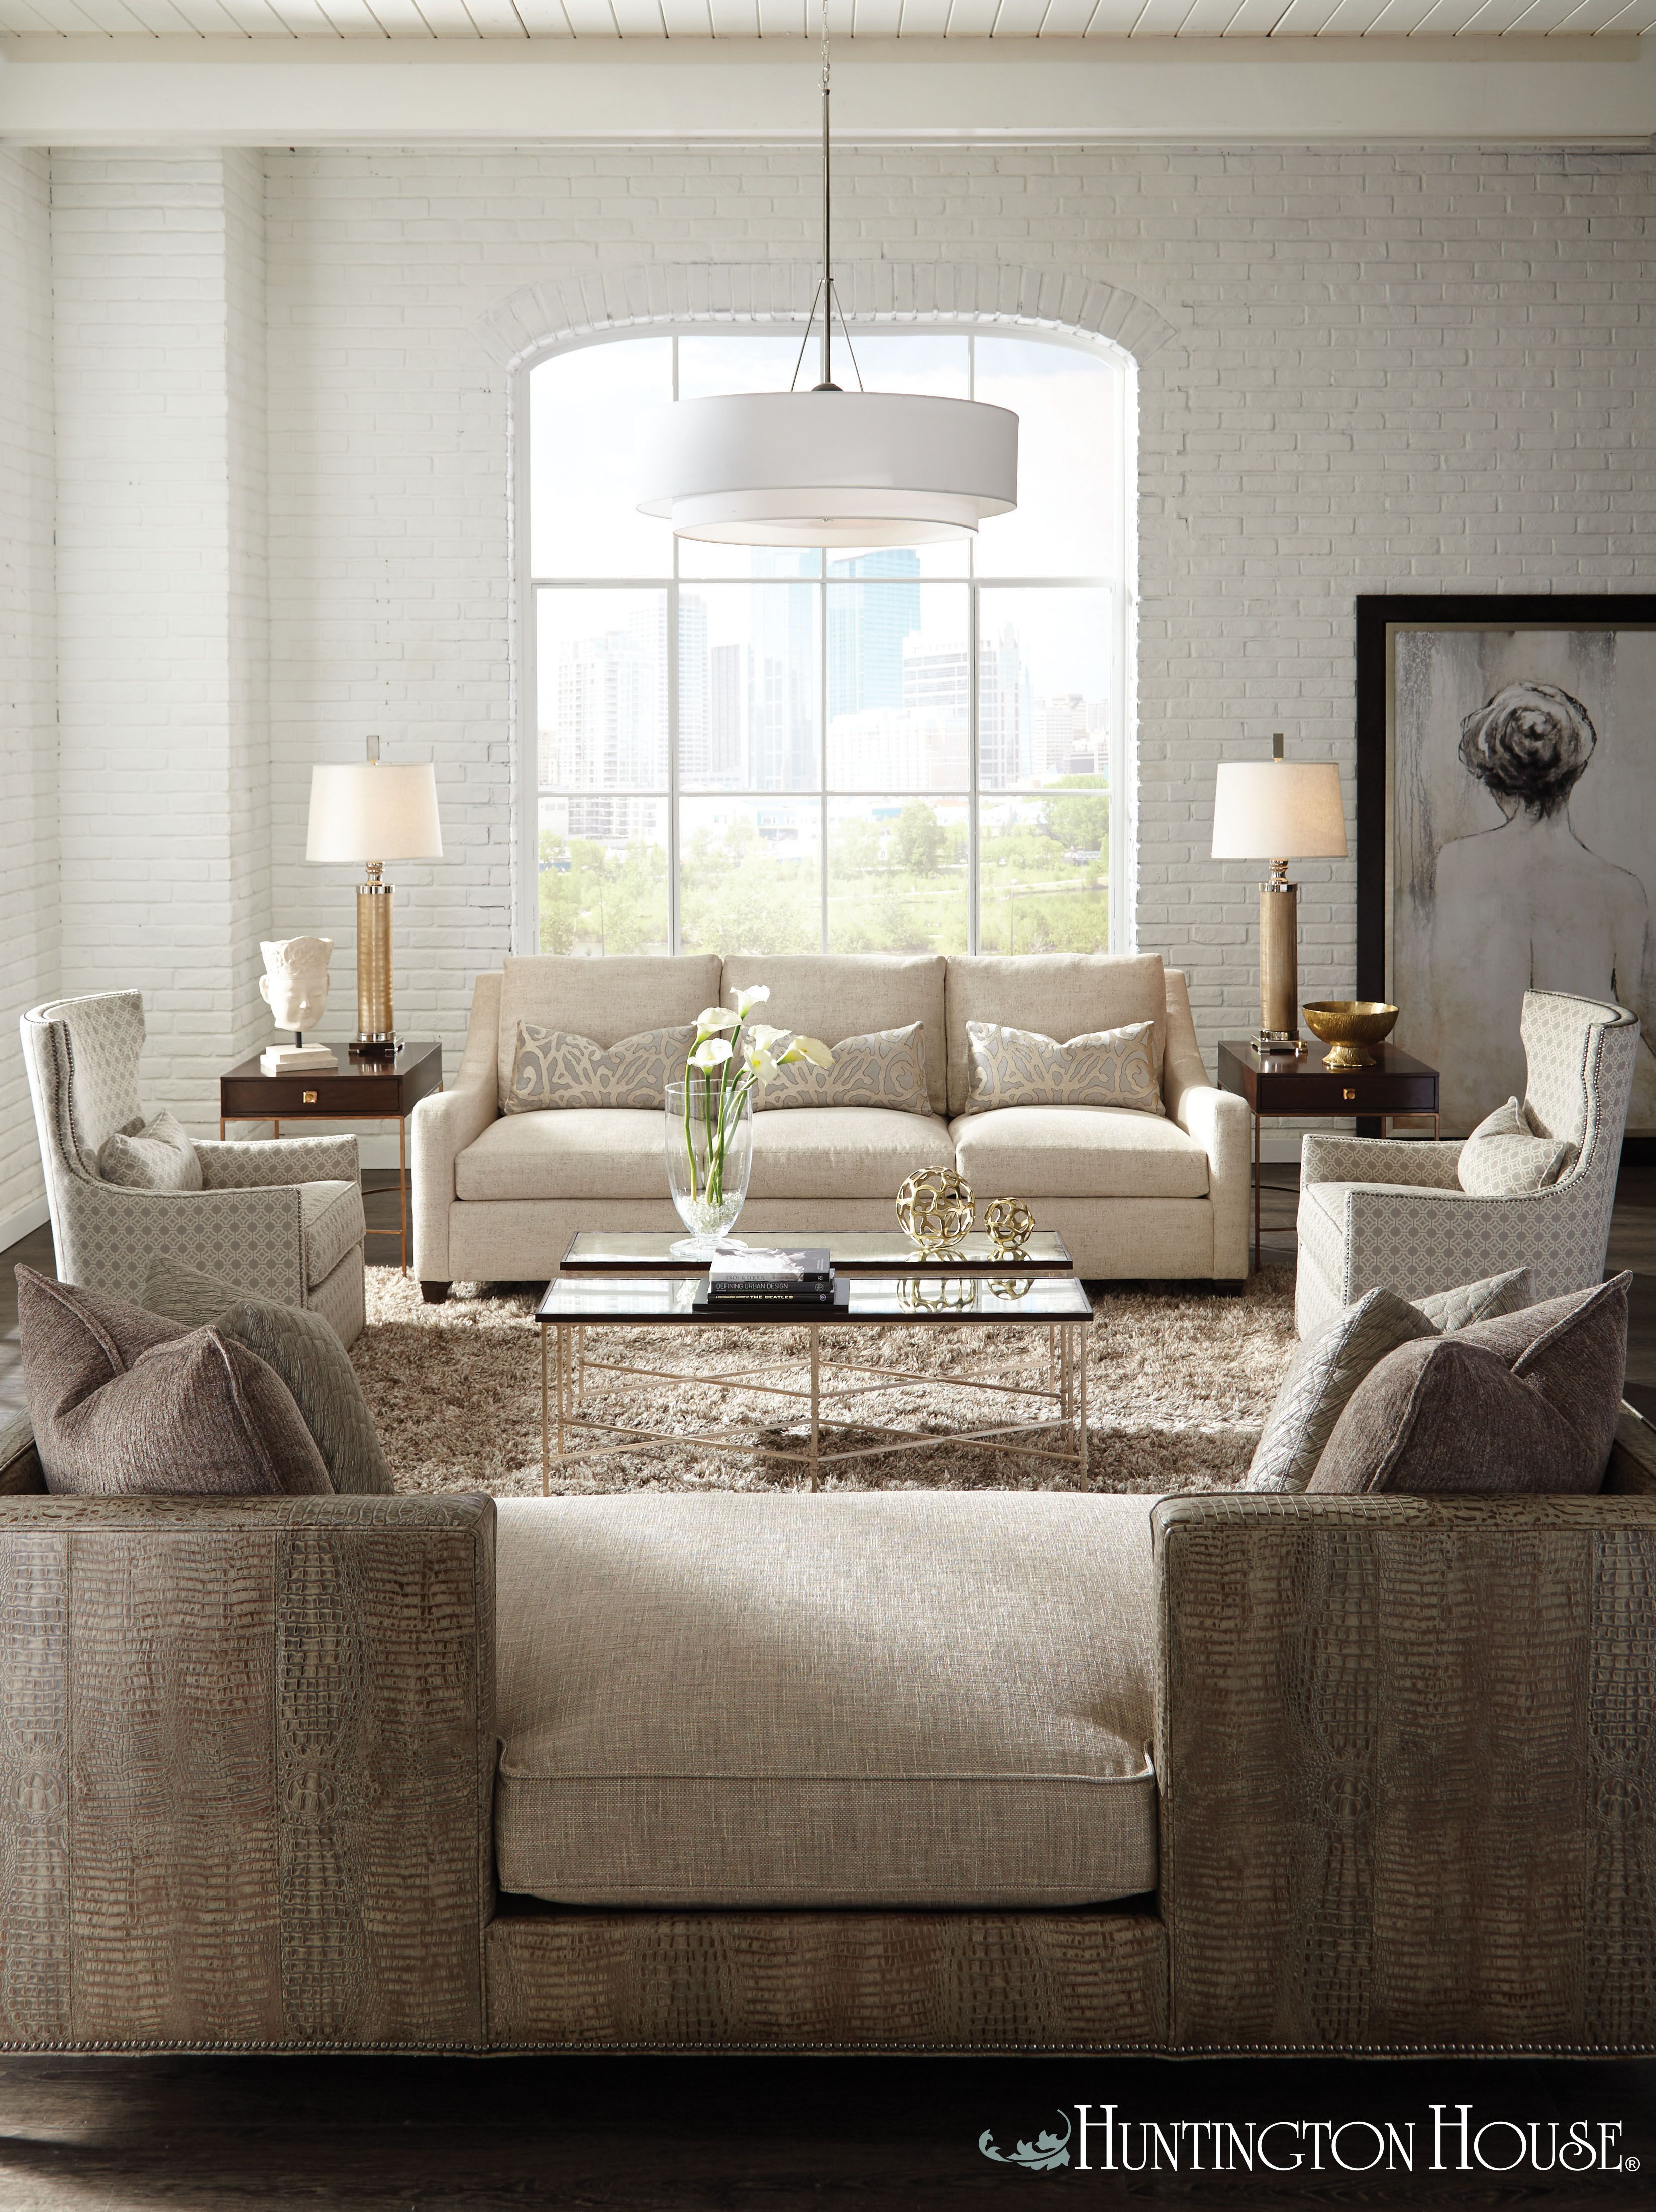 Hunington Furniture Soft Neutral Furnishings From Huntington House Turn This